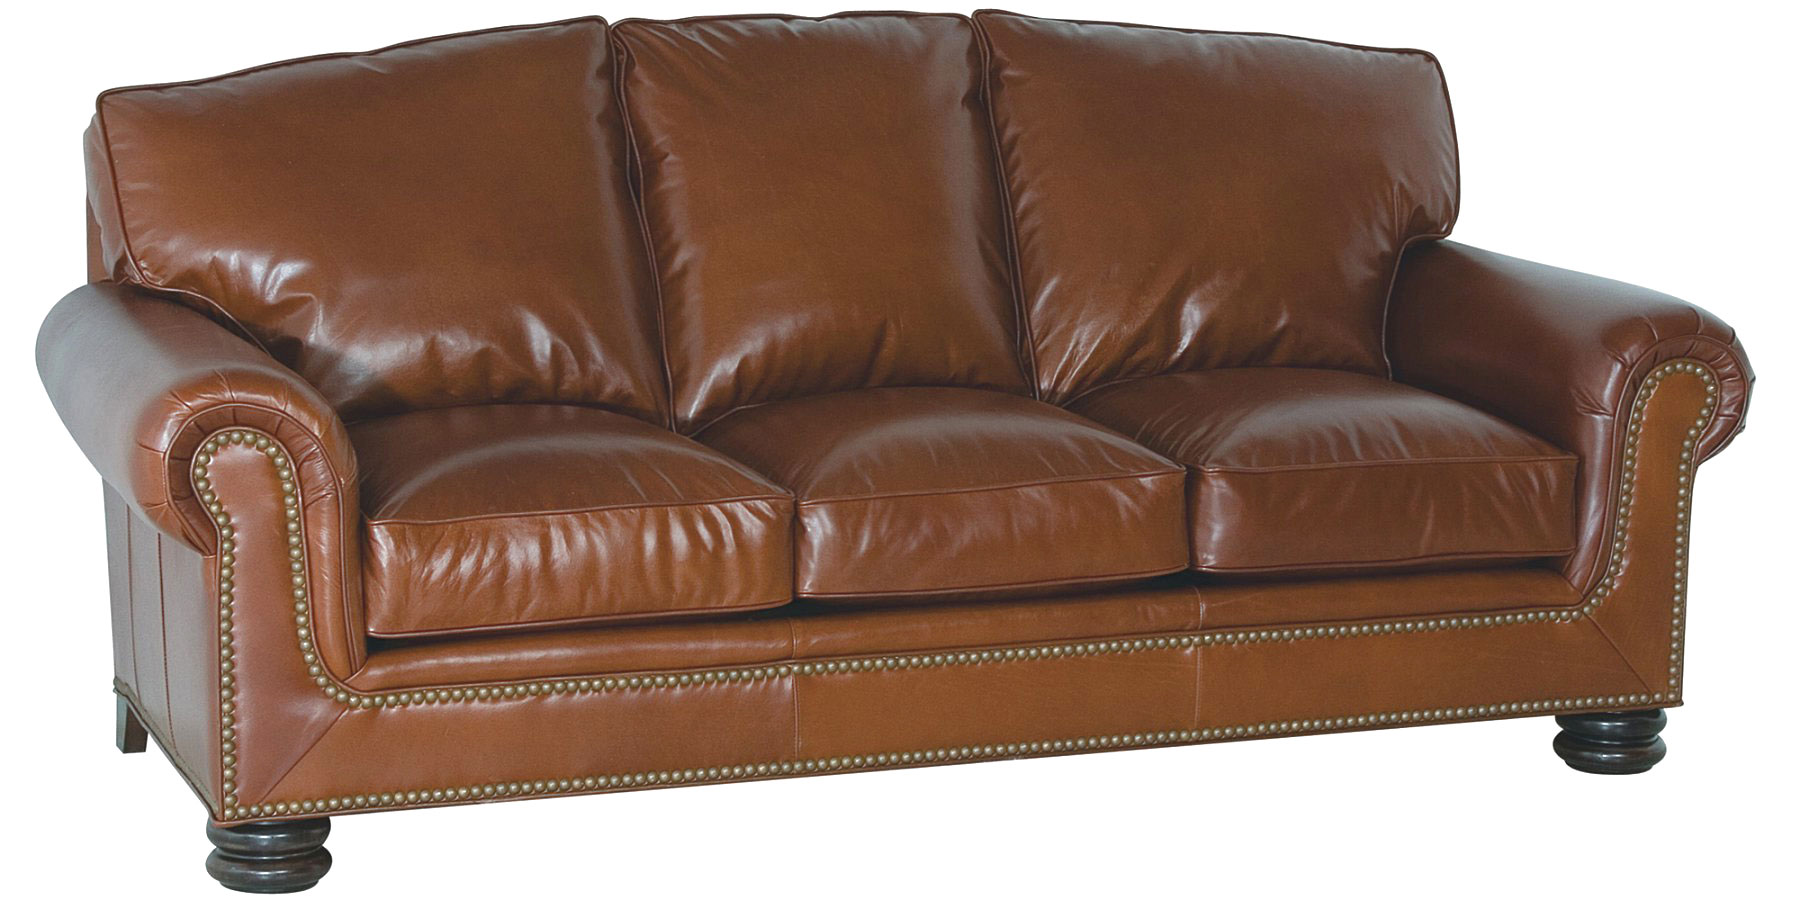 Arched pillow back top grain leather sofa club furniture for Best pillows for leather couch